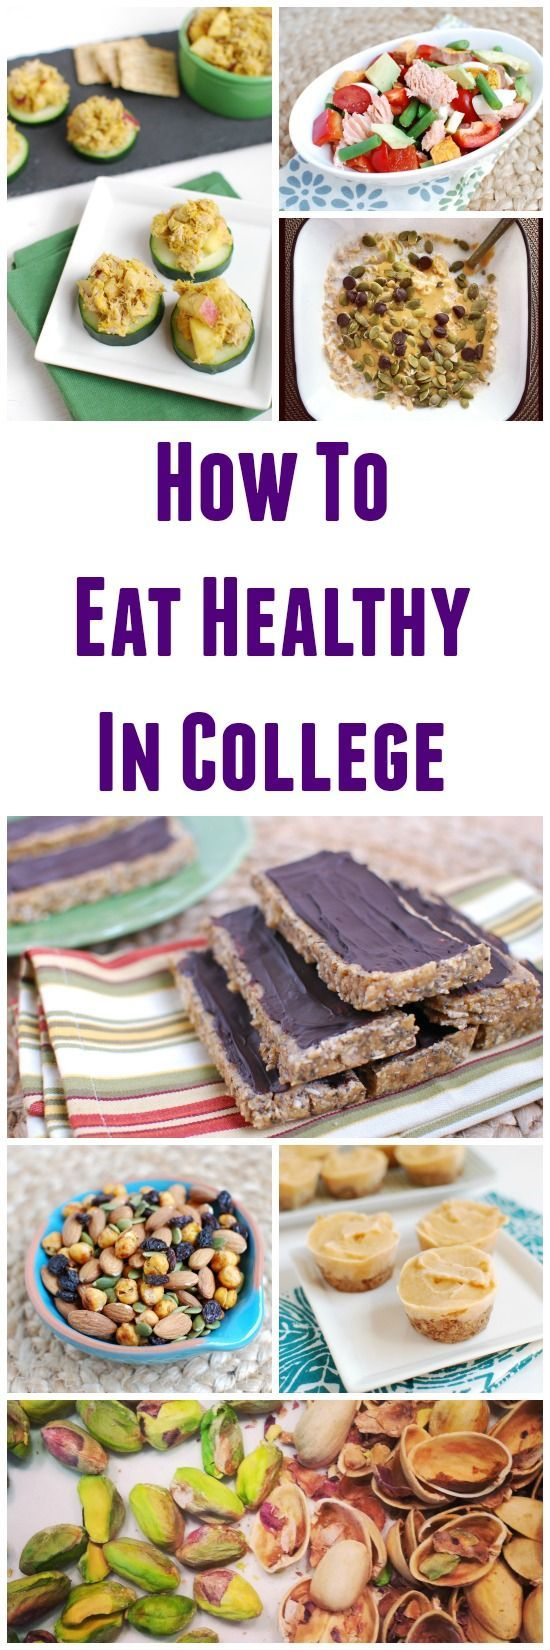 Best 25 uni food student ideas on pinterest student food best 25 uni food student ideas on pinterest student food college recipes and college student food ccuart Image collections